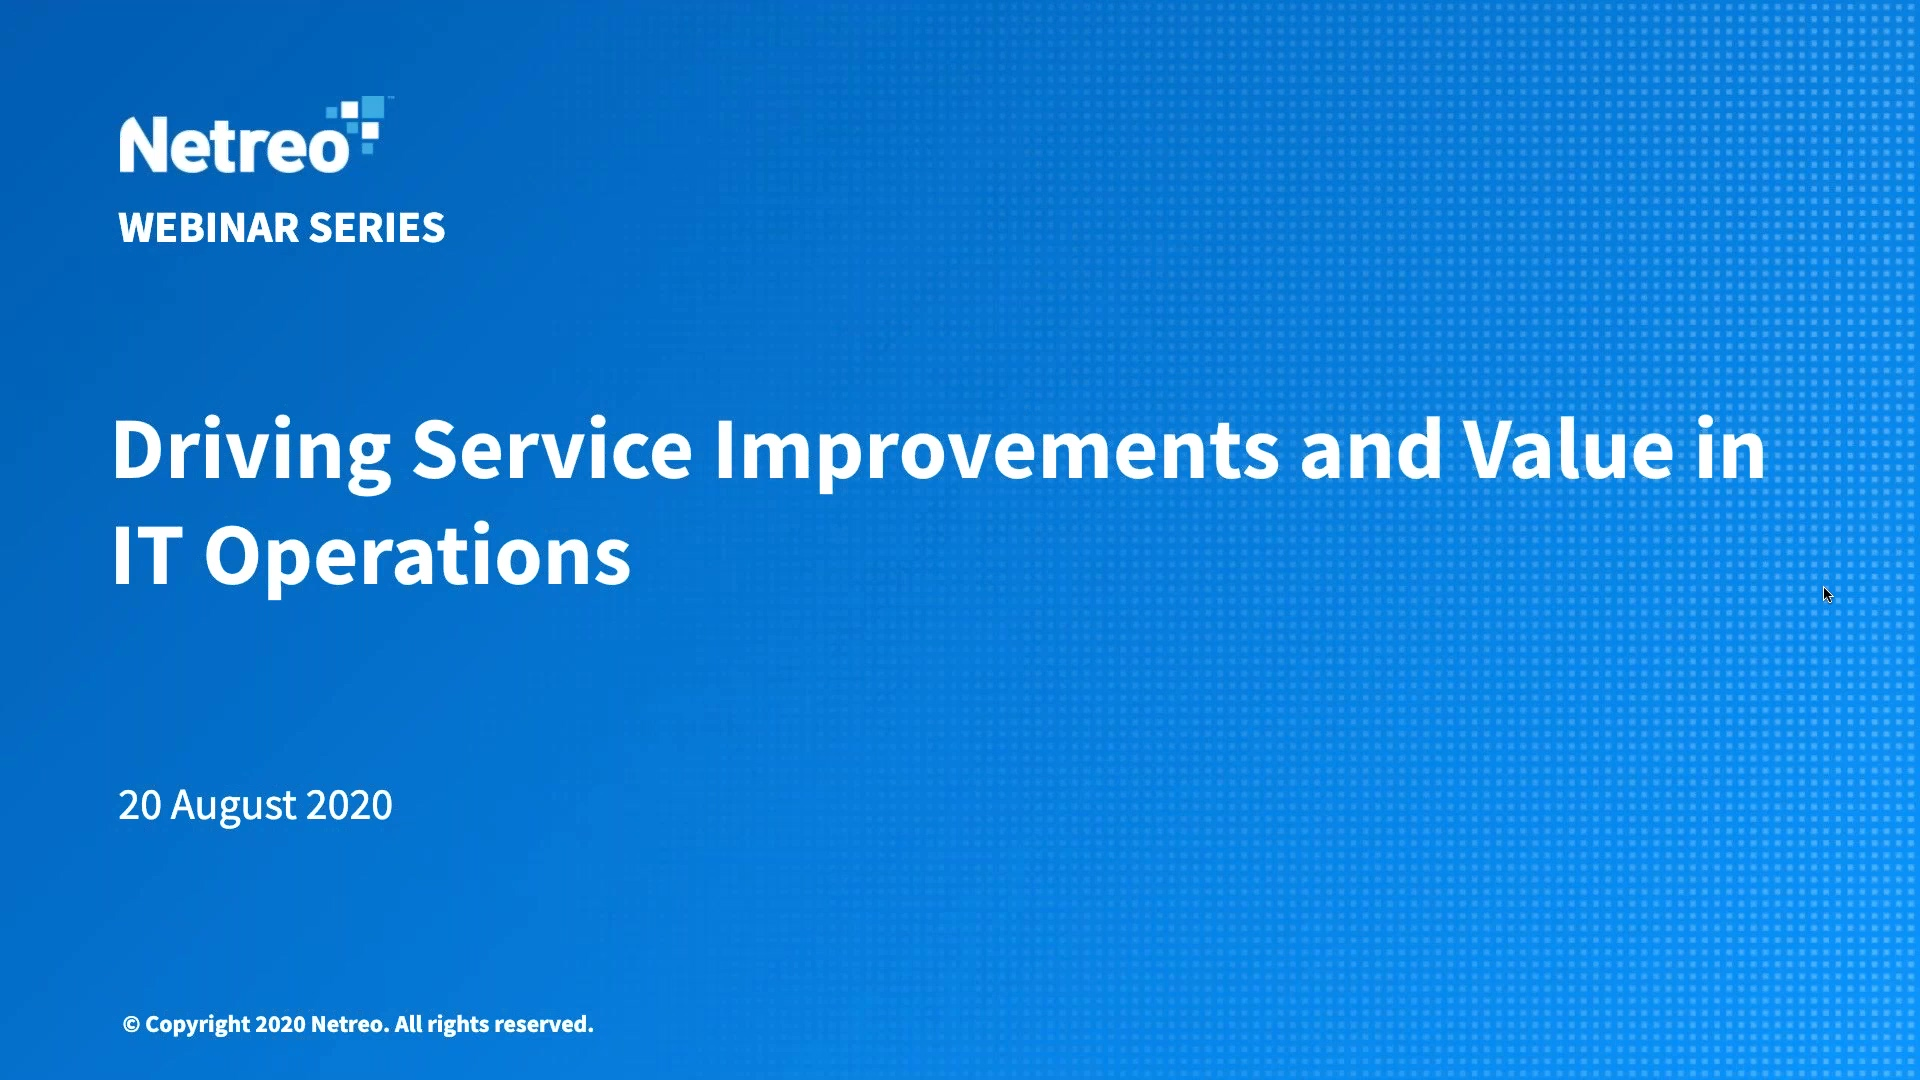 Driving Service Improvements and Value in IT Operations